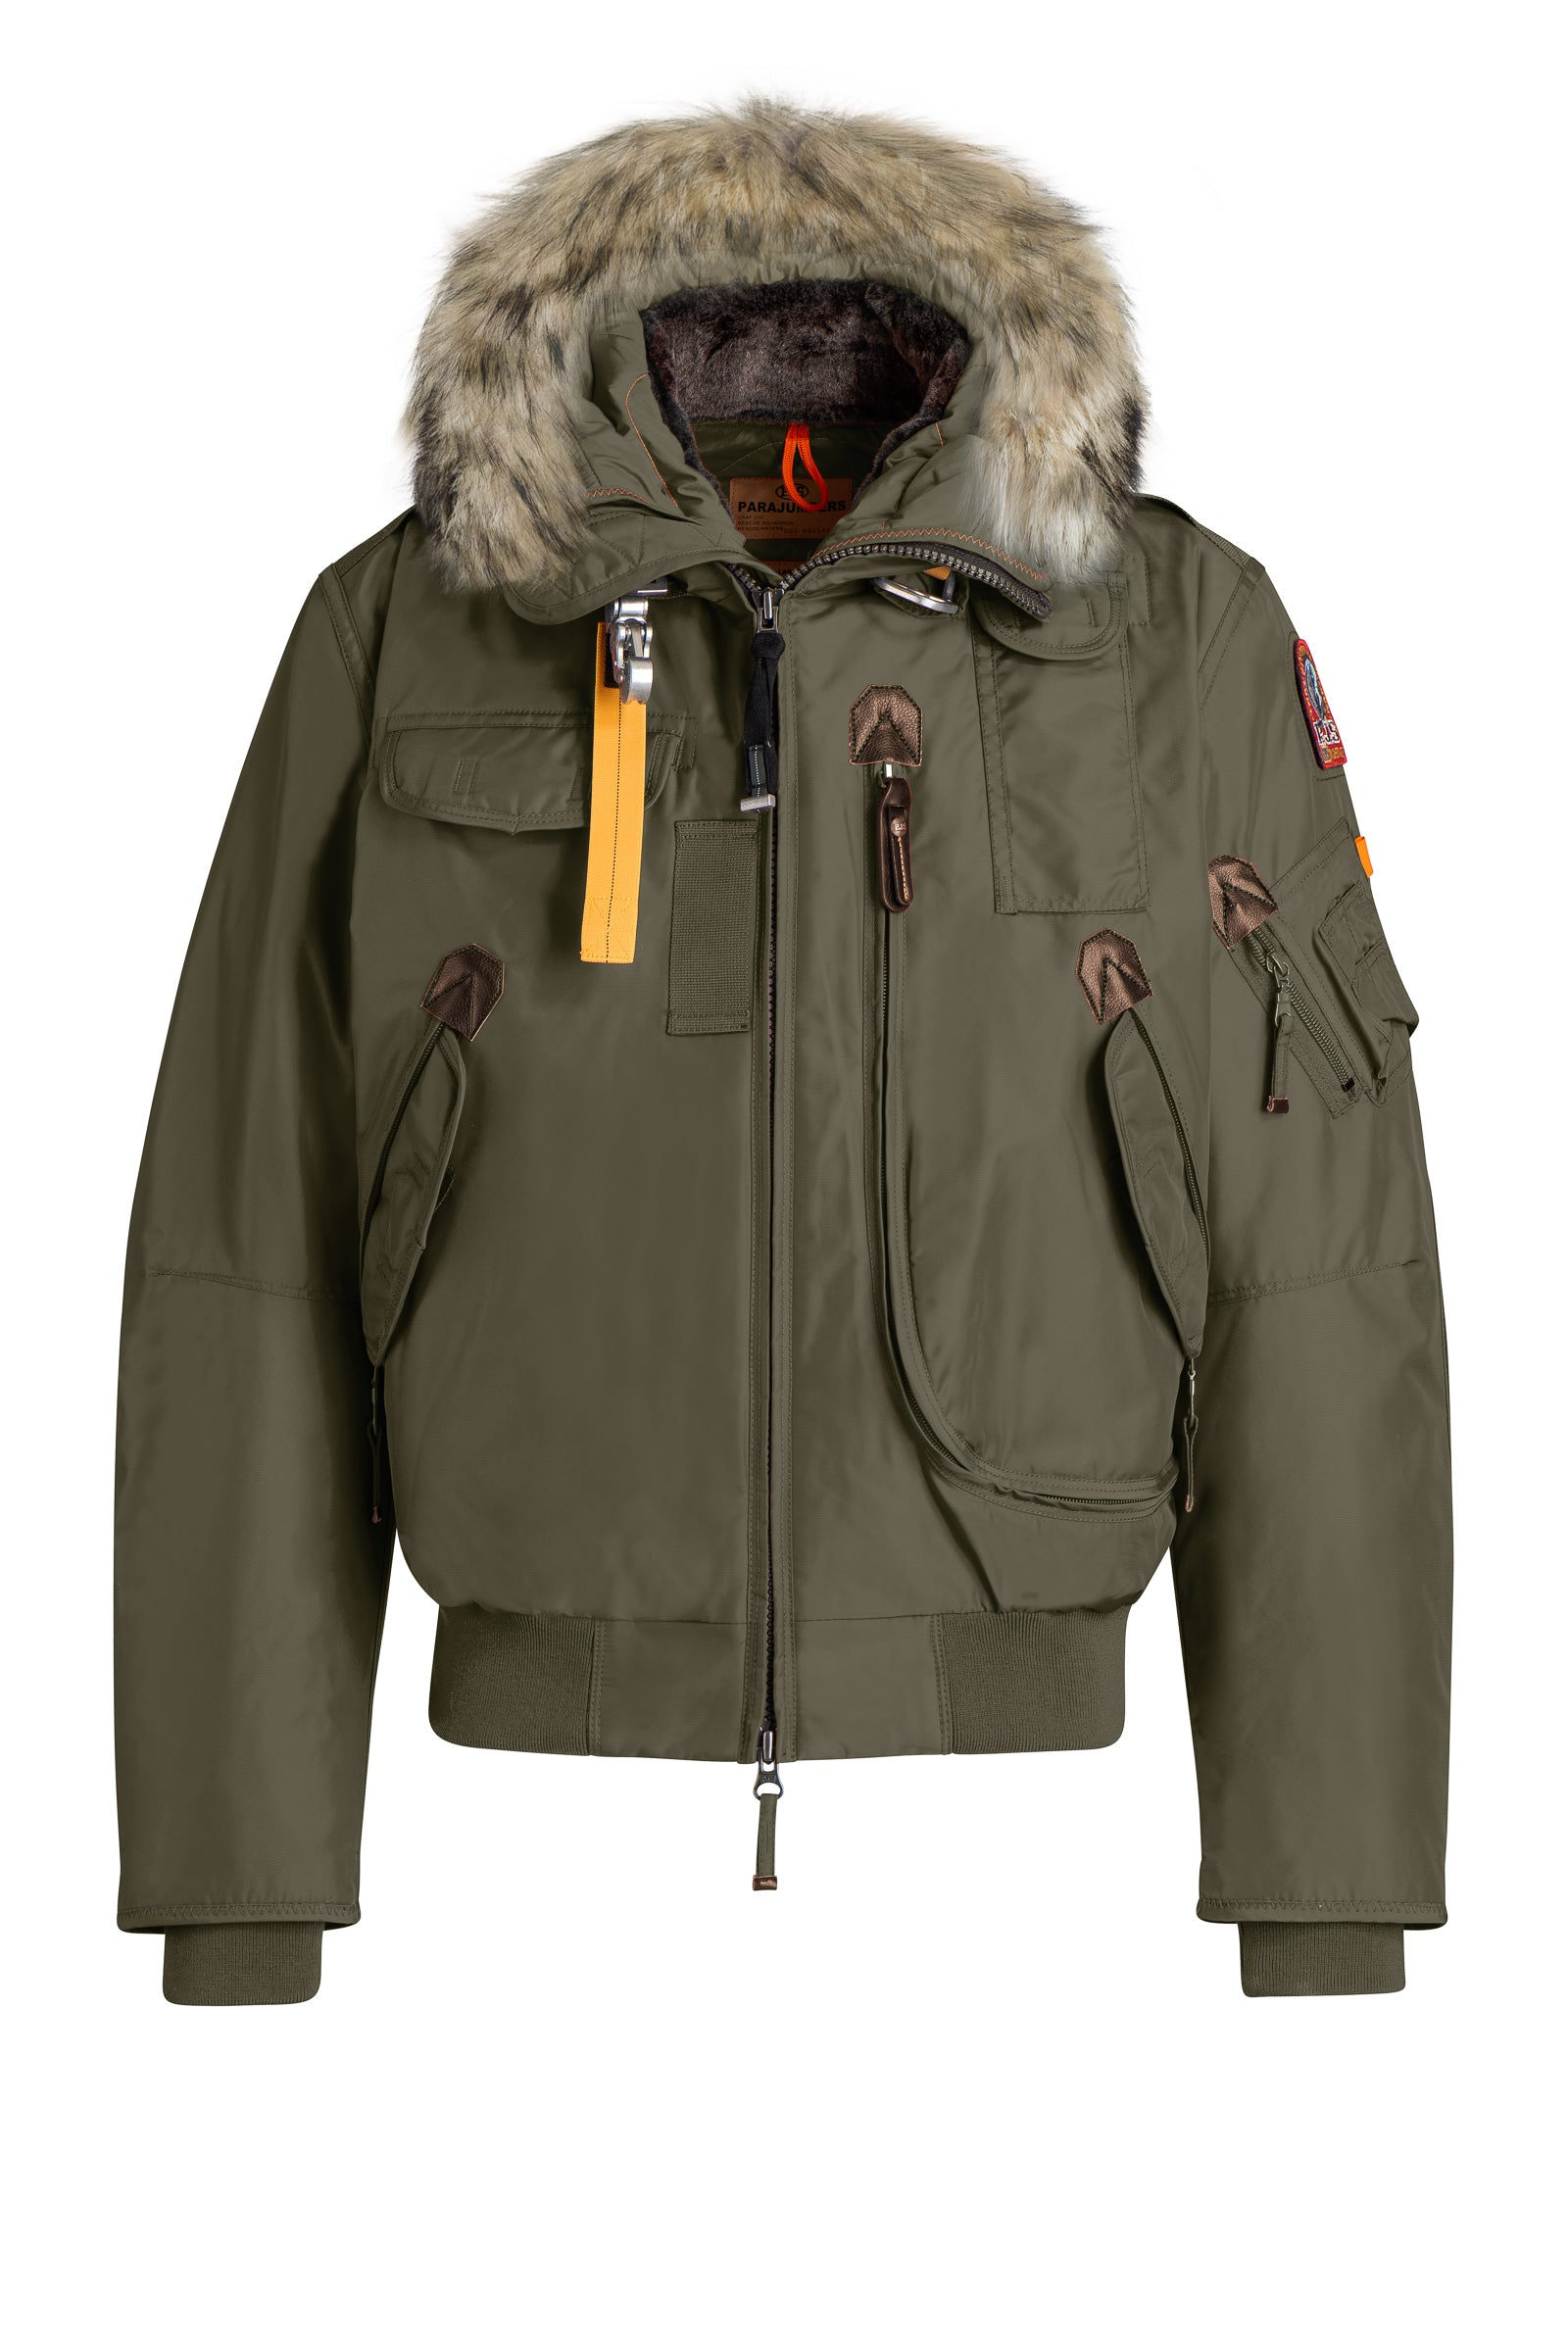 Parajumpers Gobi Men's Bomber in Fisherman